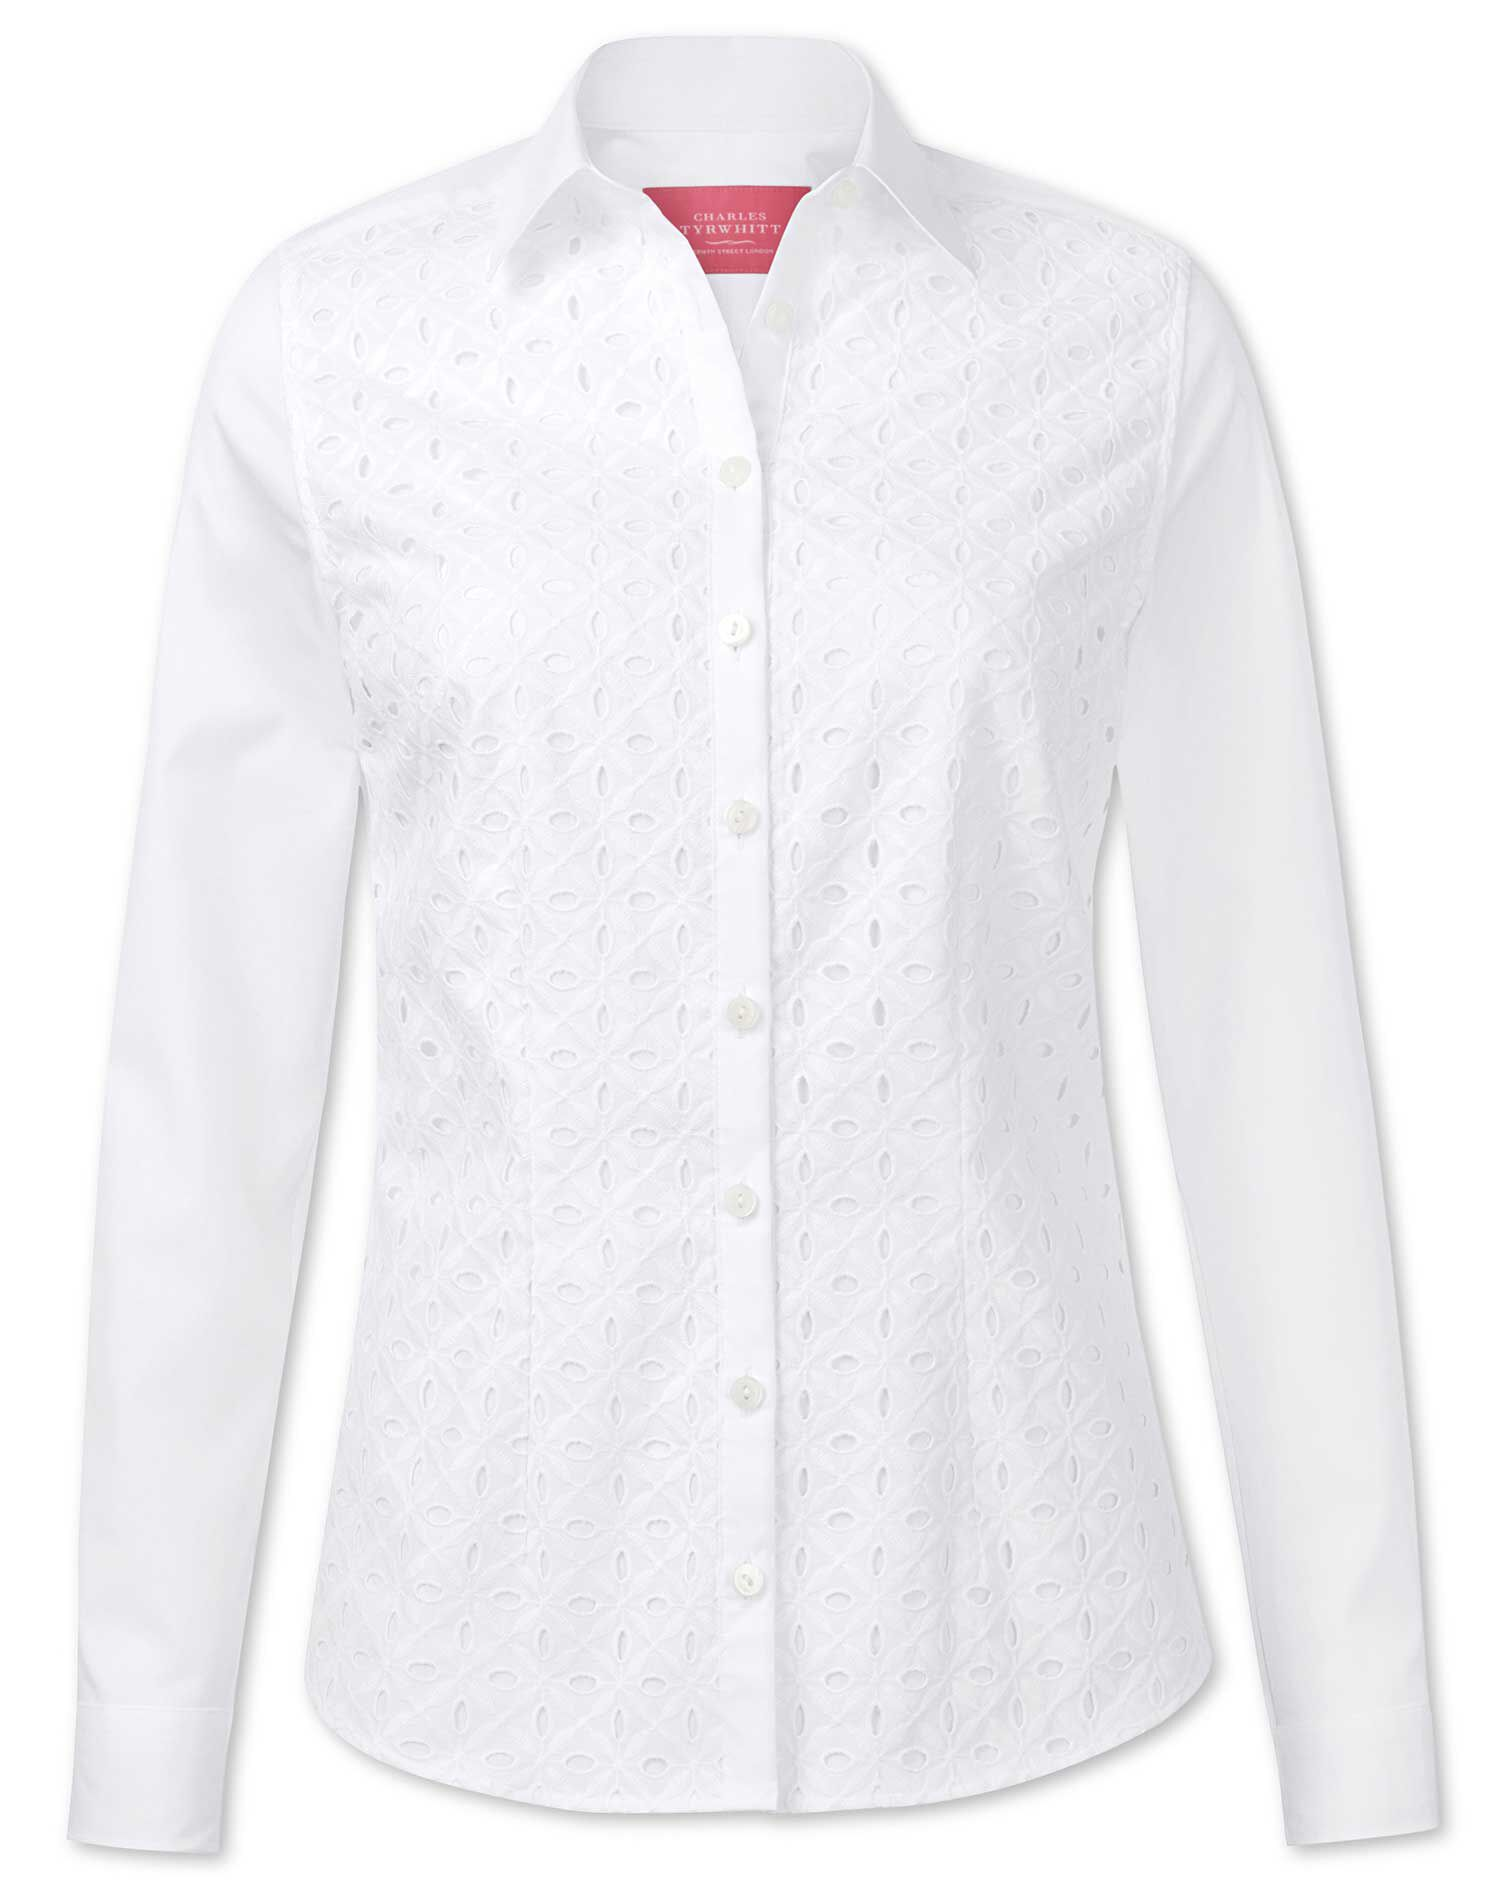 Women's Semi-Fitted White Cutwork Detail Essential Cotton Shirt Size 14 by Charles Tyrwhitt